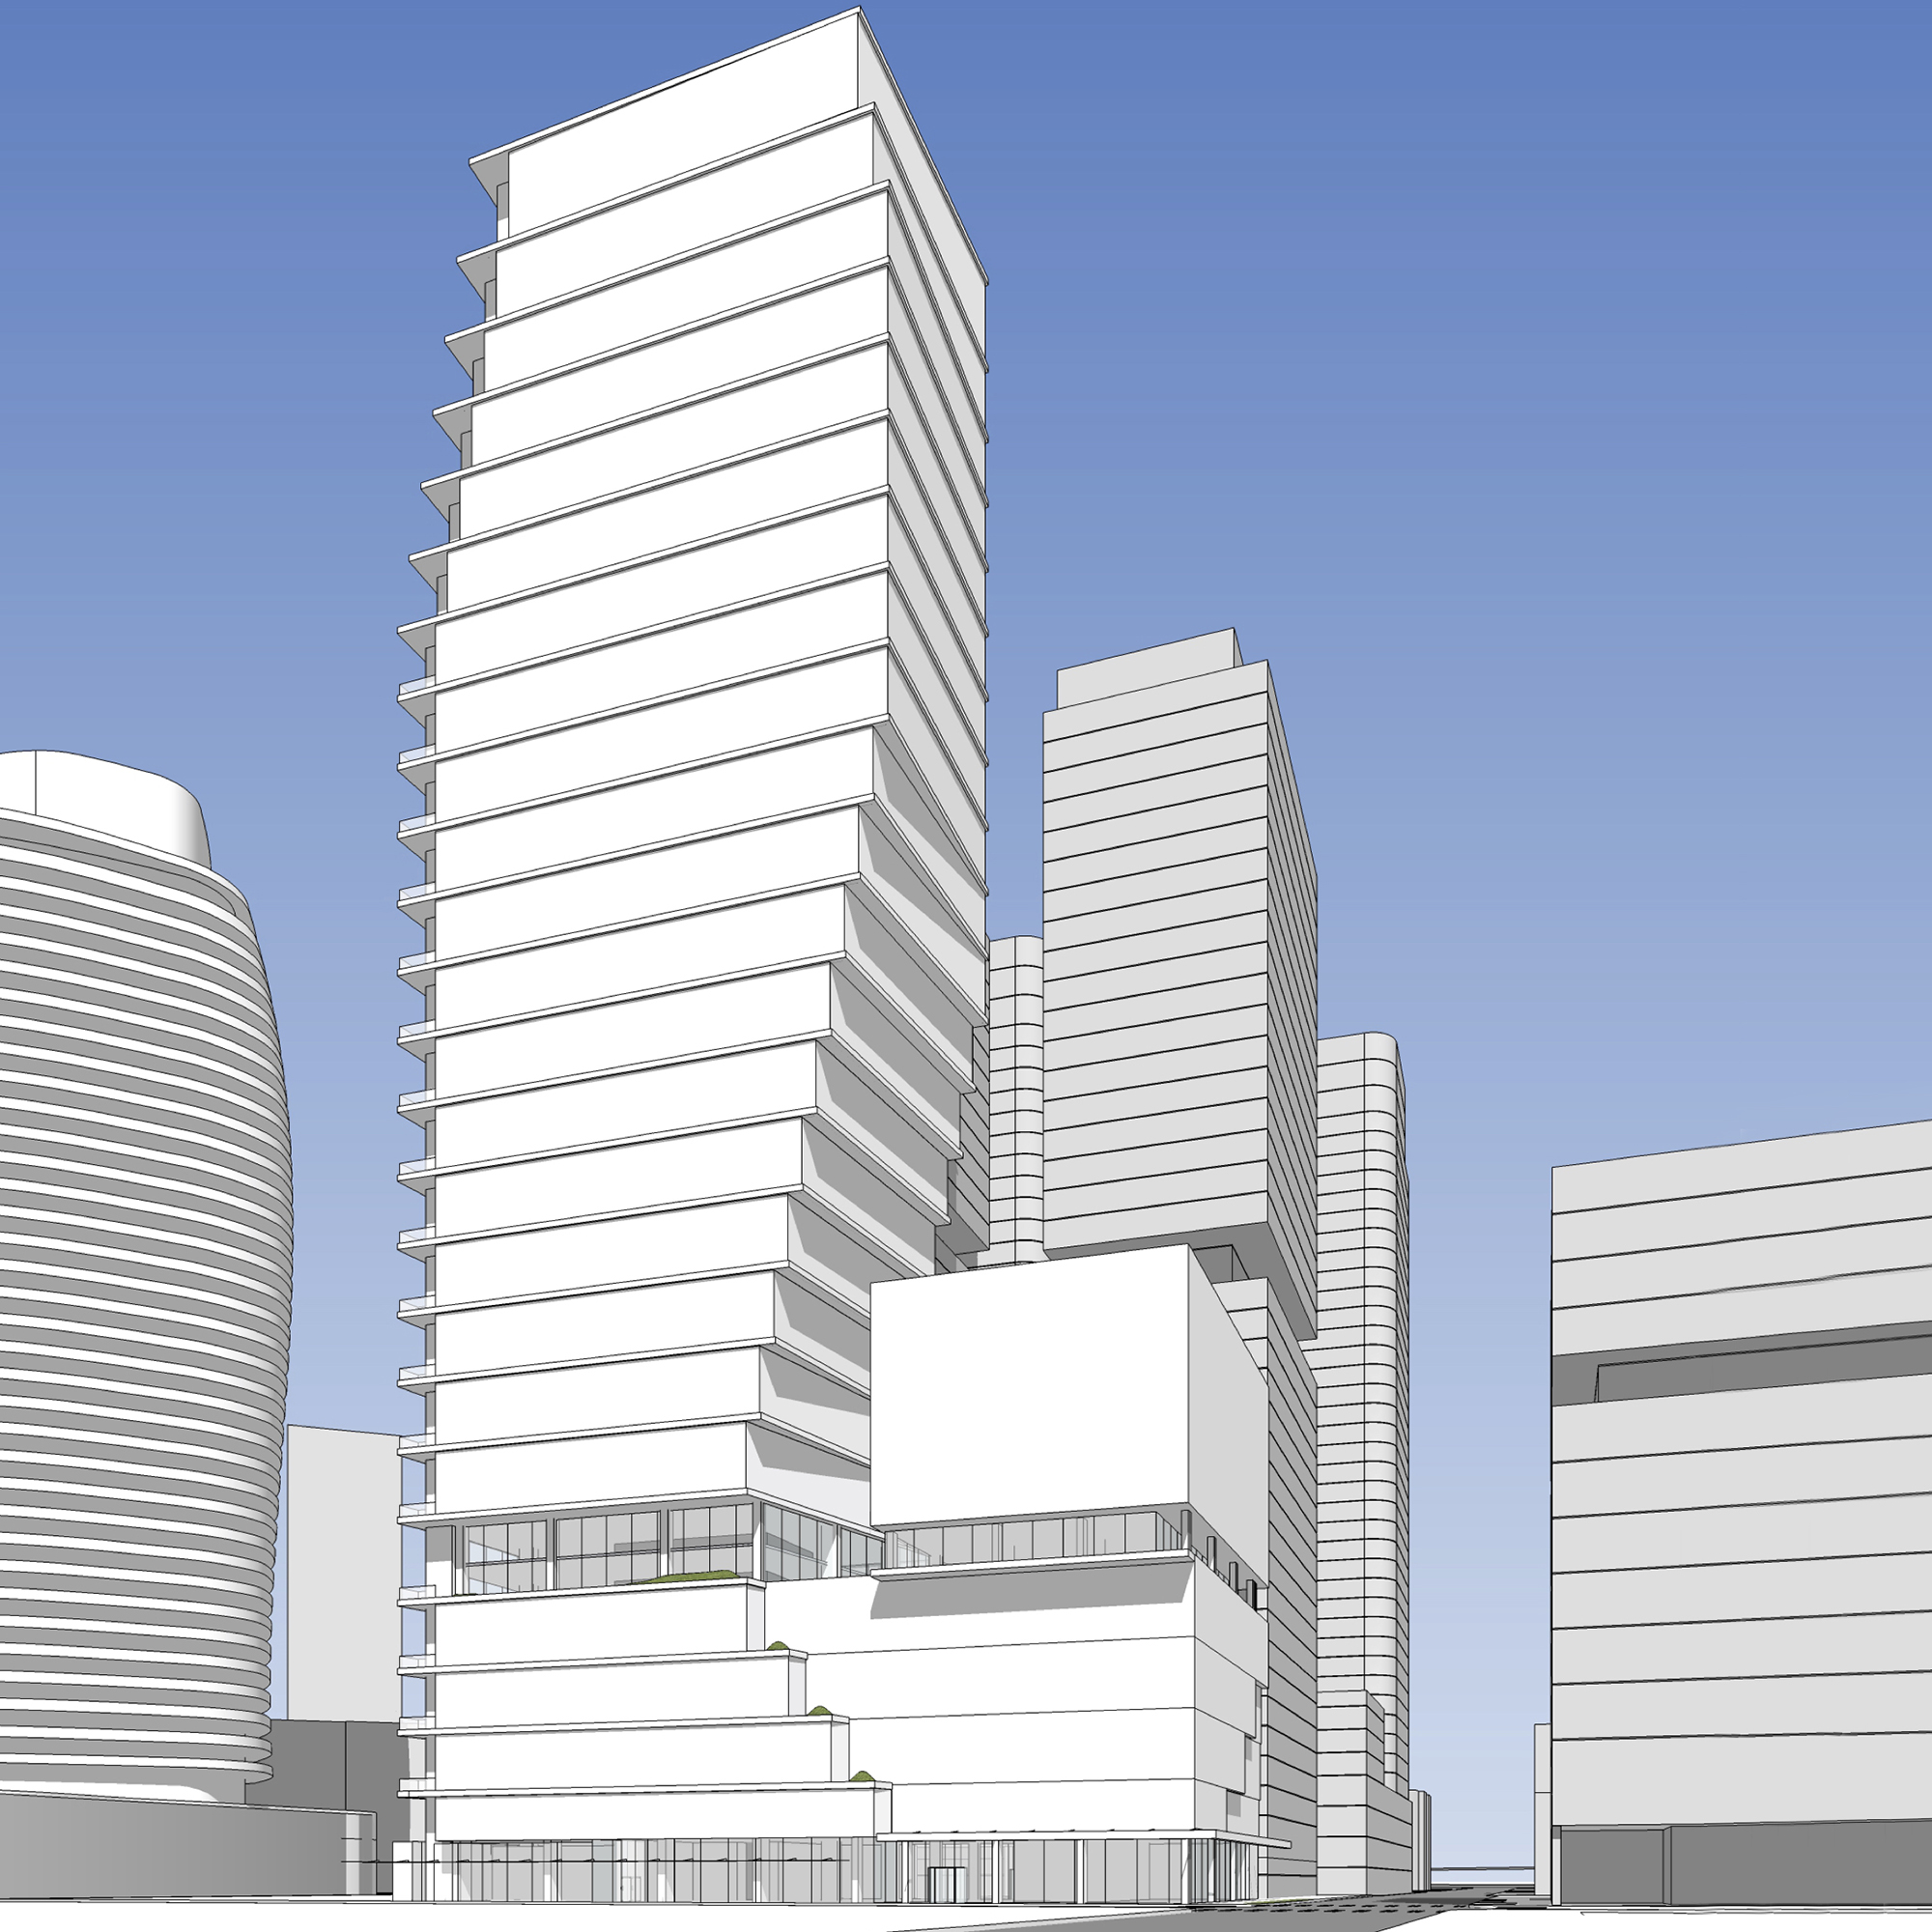 The two-tower project at 1916 Boren will include a 44-story residential tower and a 16-story adjoining hotel tower.